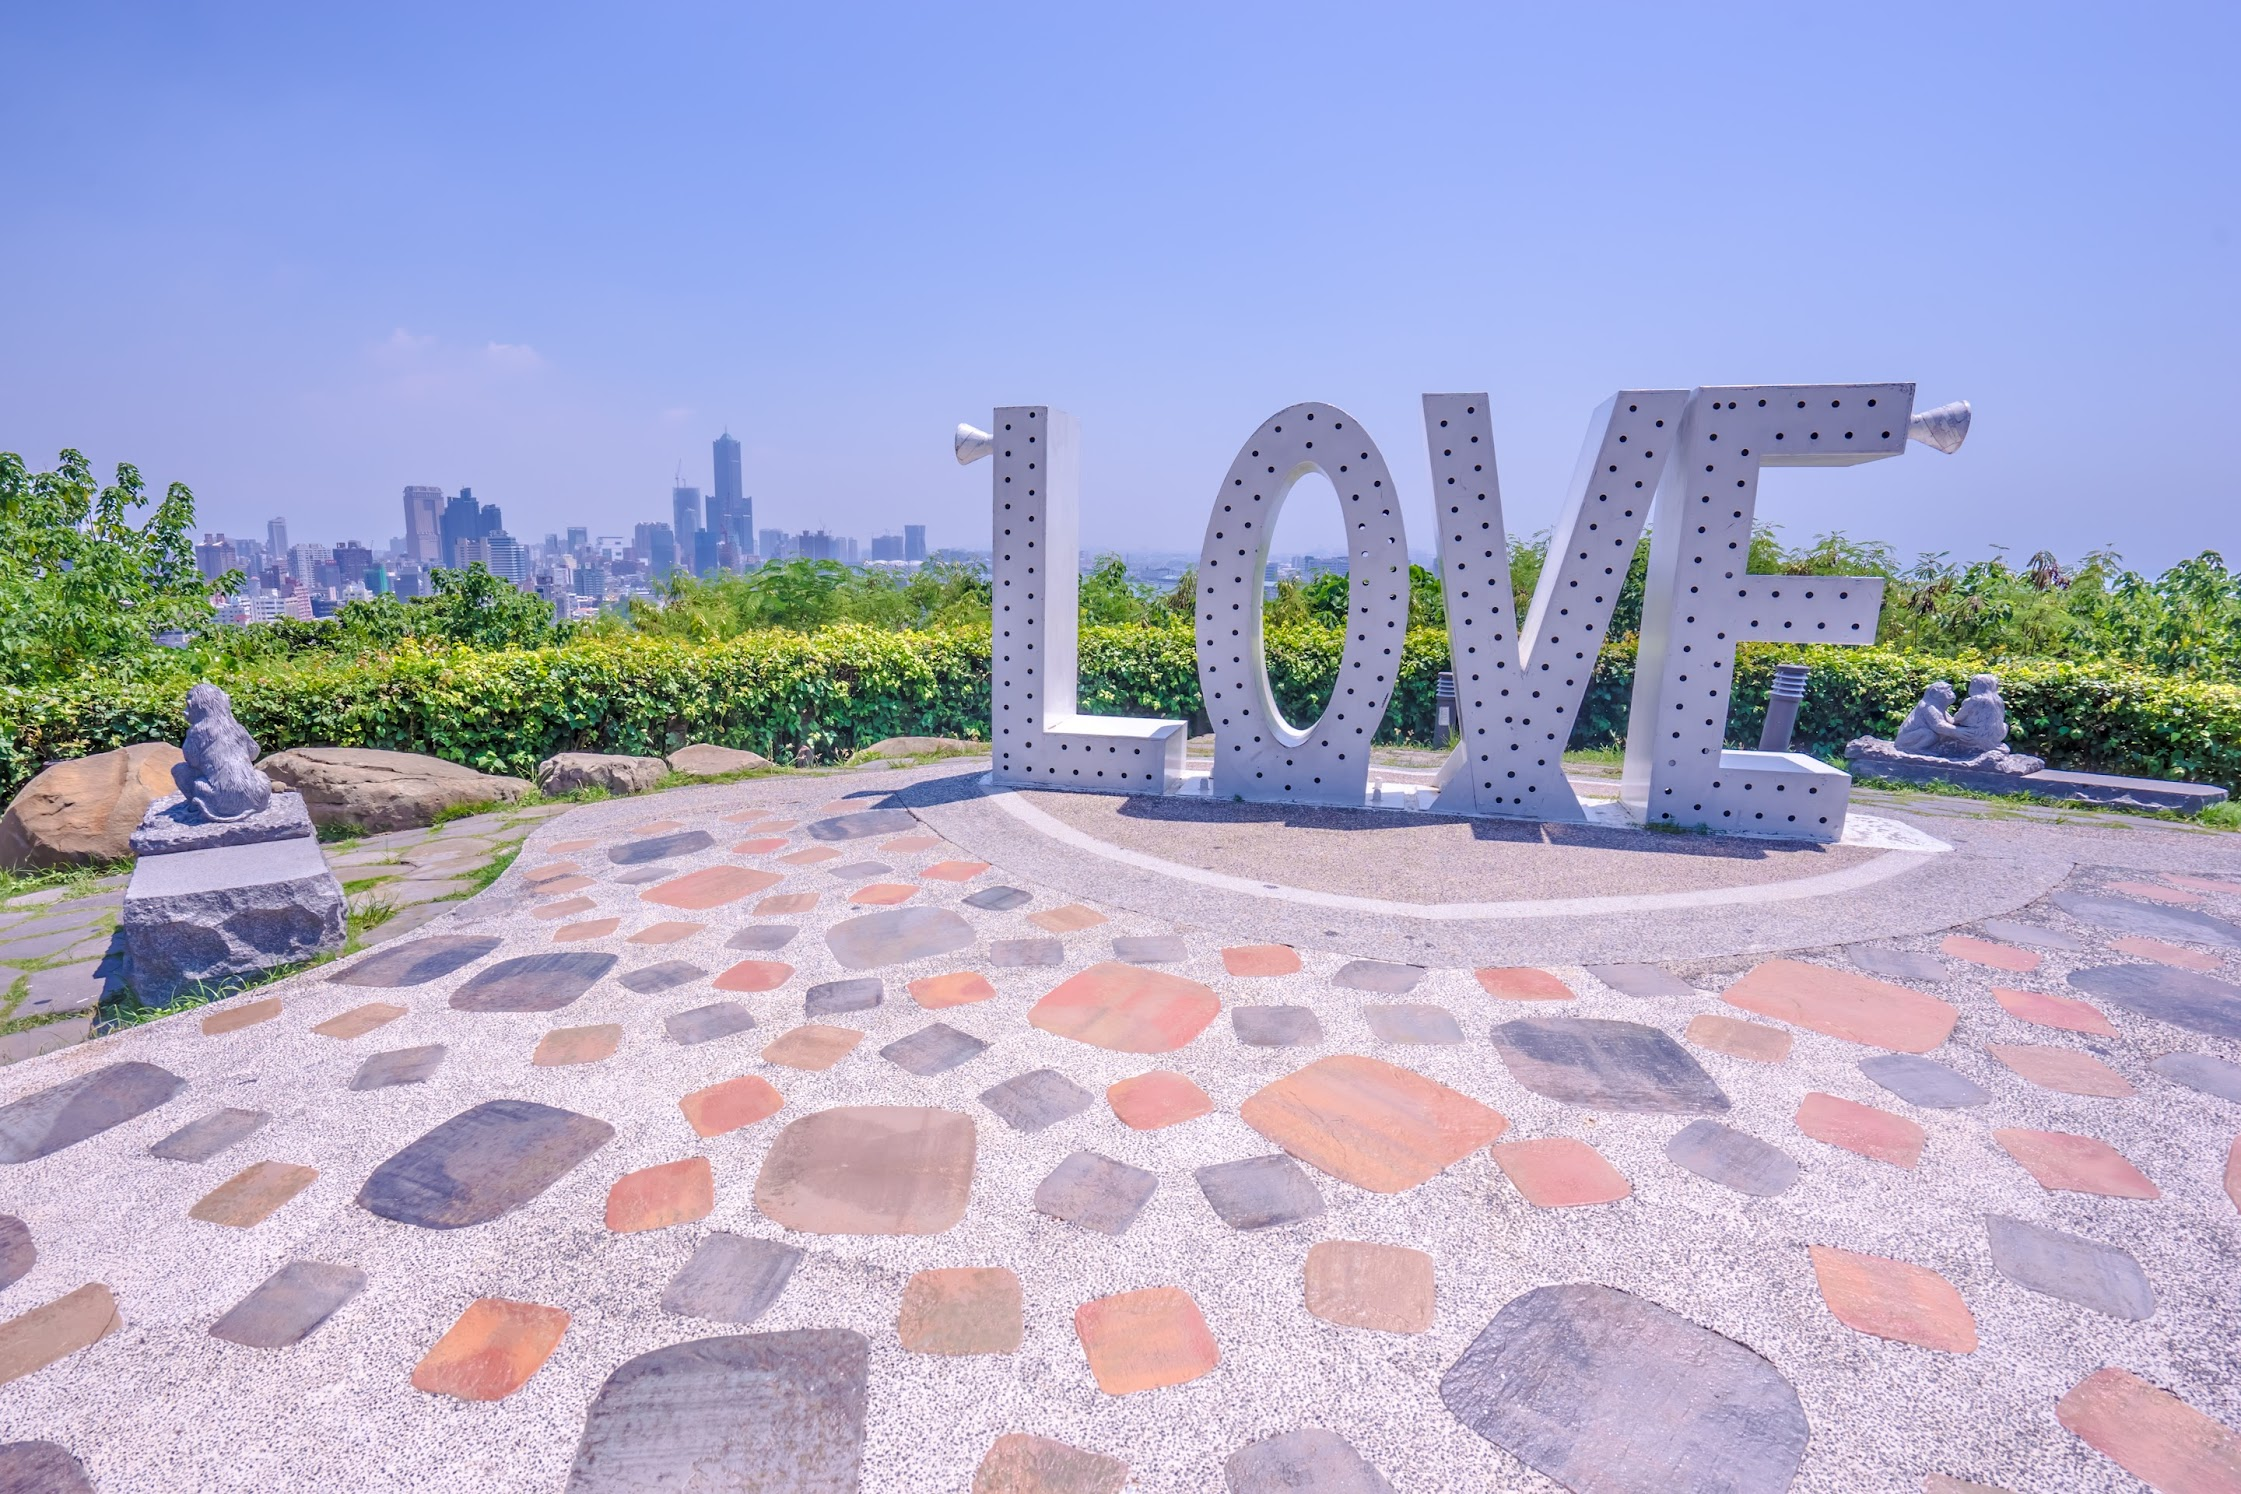 Kaohsiung Shoushan LOVE Valentine's Lookout1